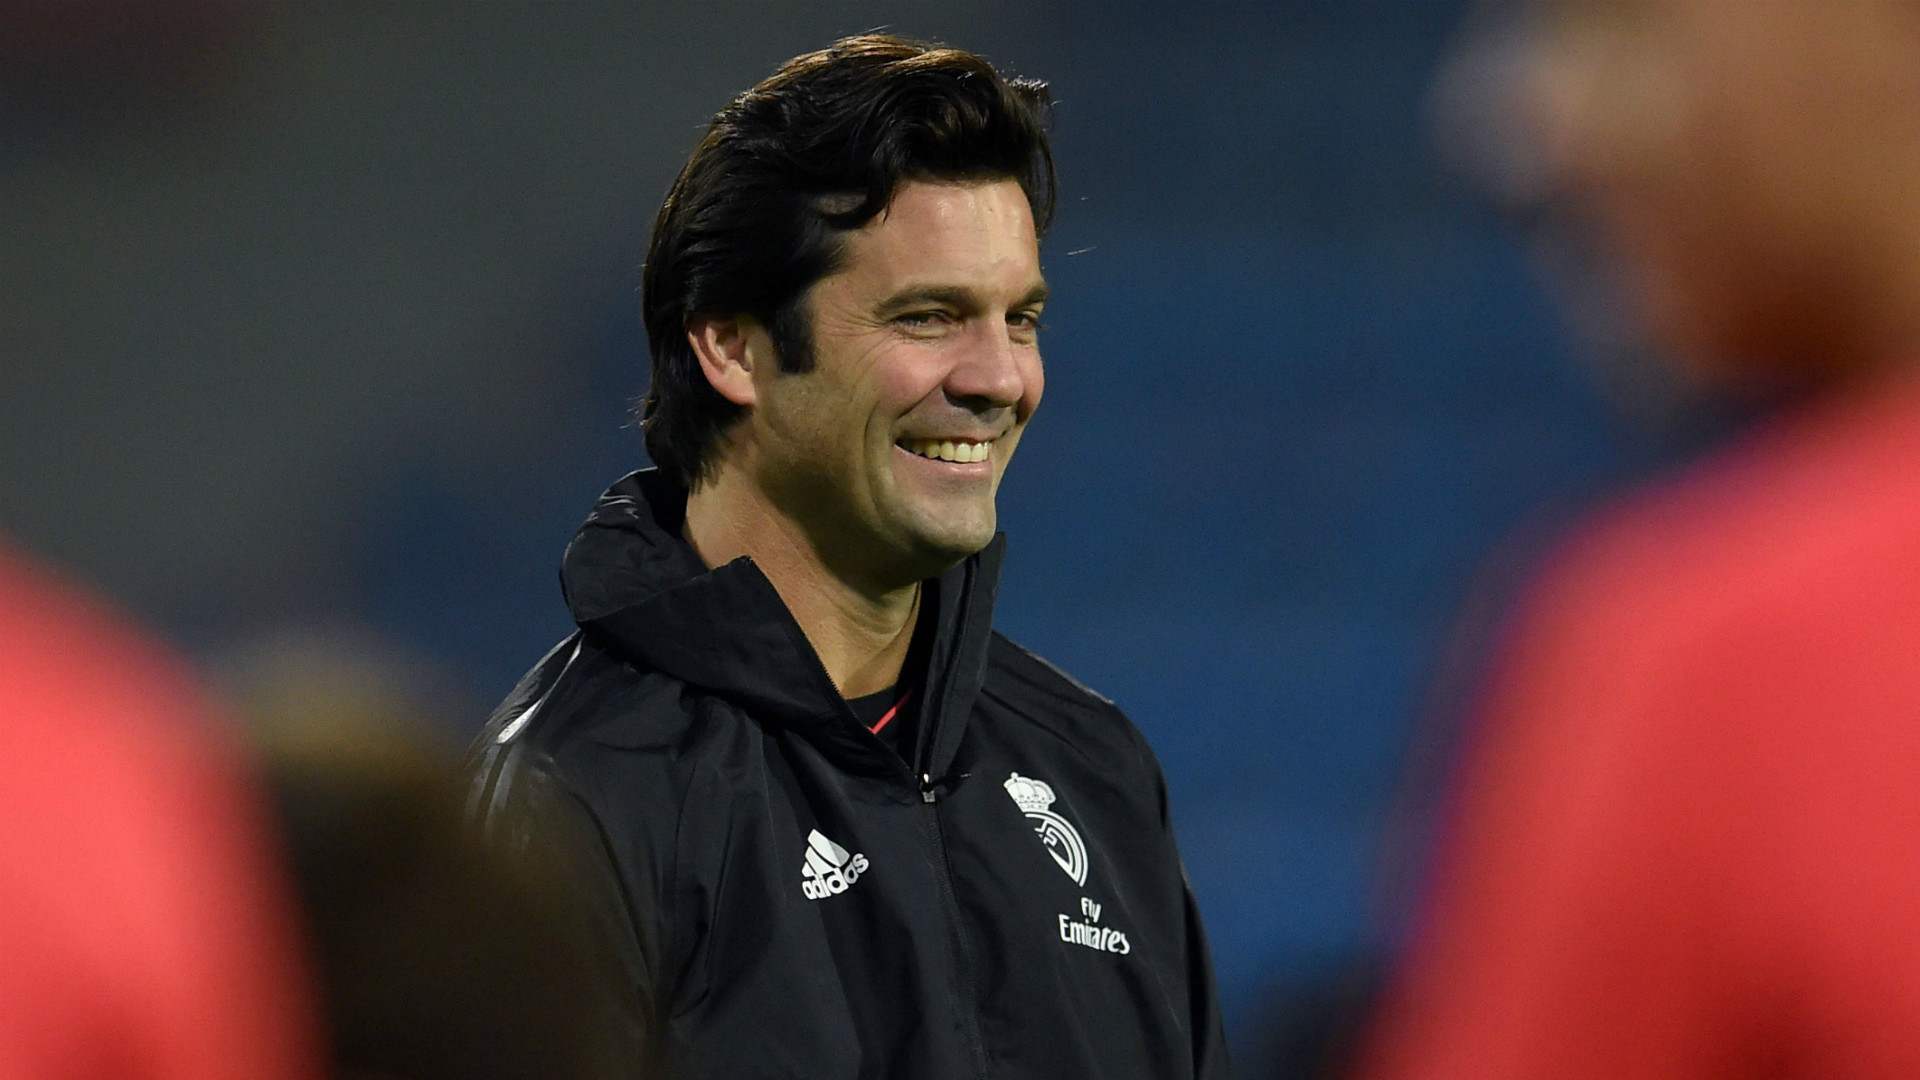 Real Madrid name Santiago Solari as Julen Lopetegui's permanent replacement